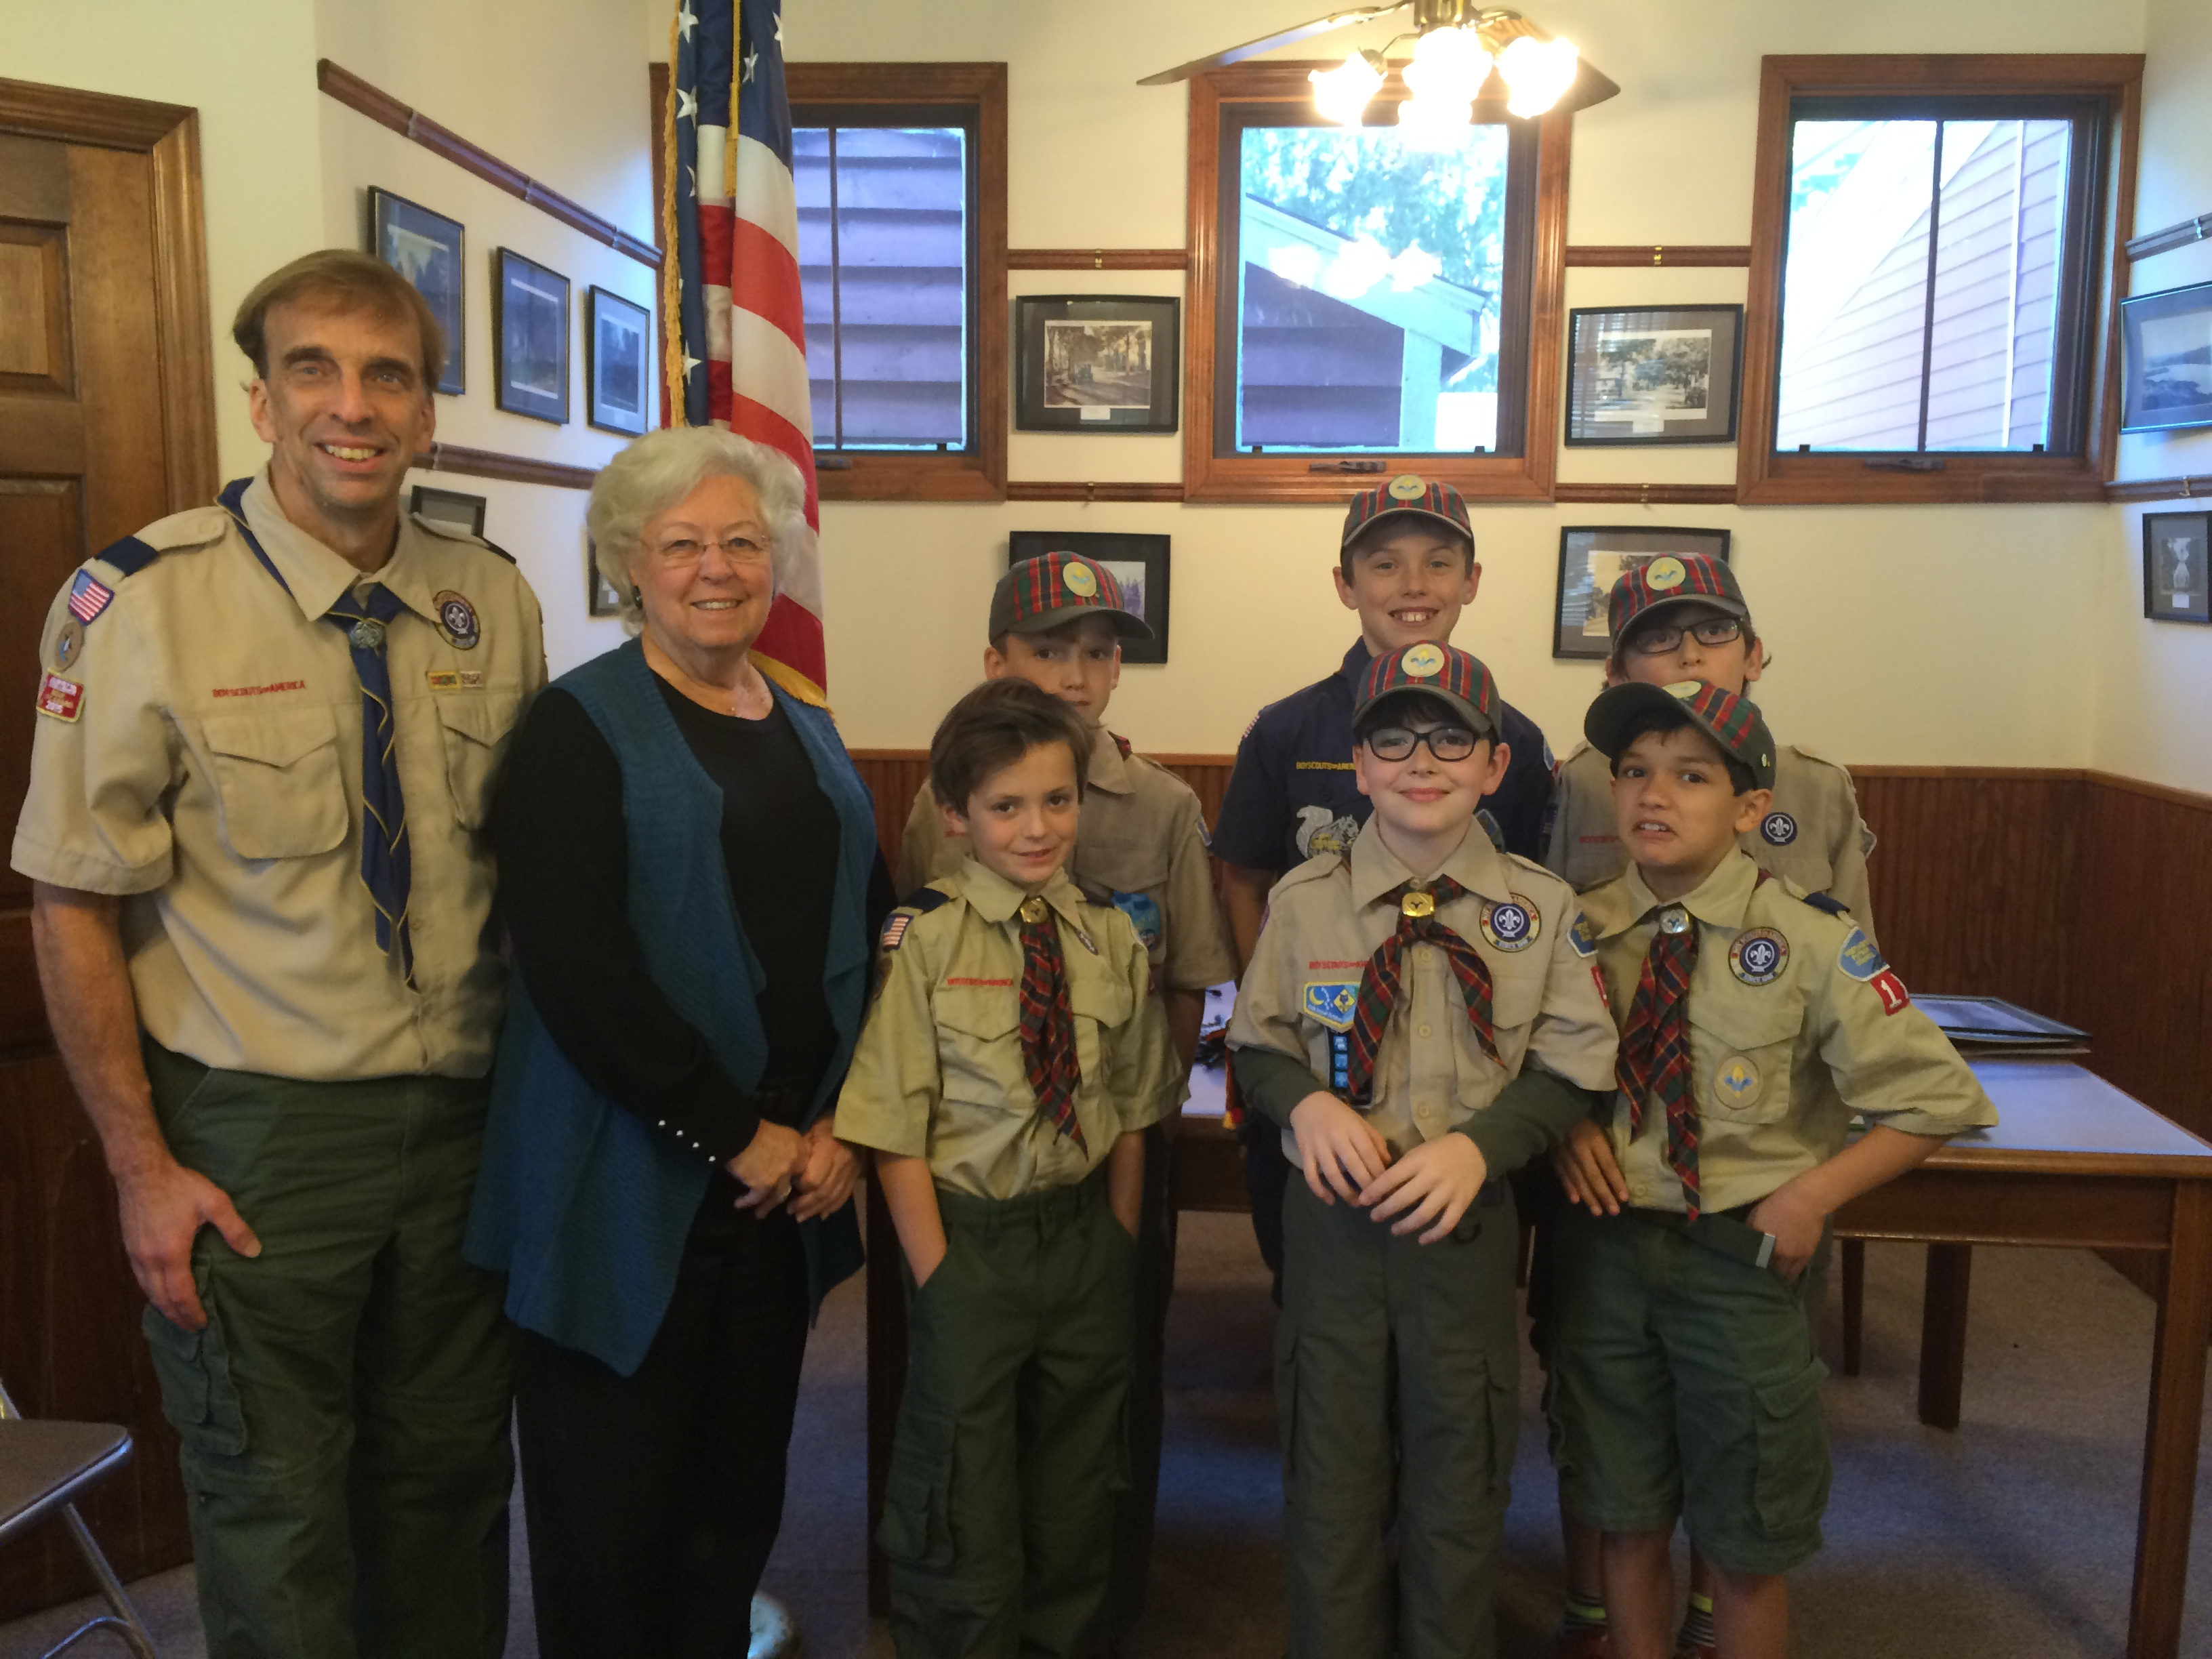 Sandy met with some Cub Scouts and their troop leader in Nelsonville to talk about government and civil service. There are many scouts of all ages throughout her district, and Sandy greatly enjoys being able to catch up with what the community-minded youth in the area are up to.<br /><br />&nbsp;